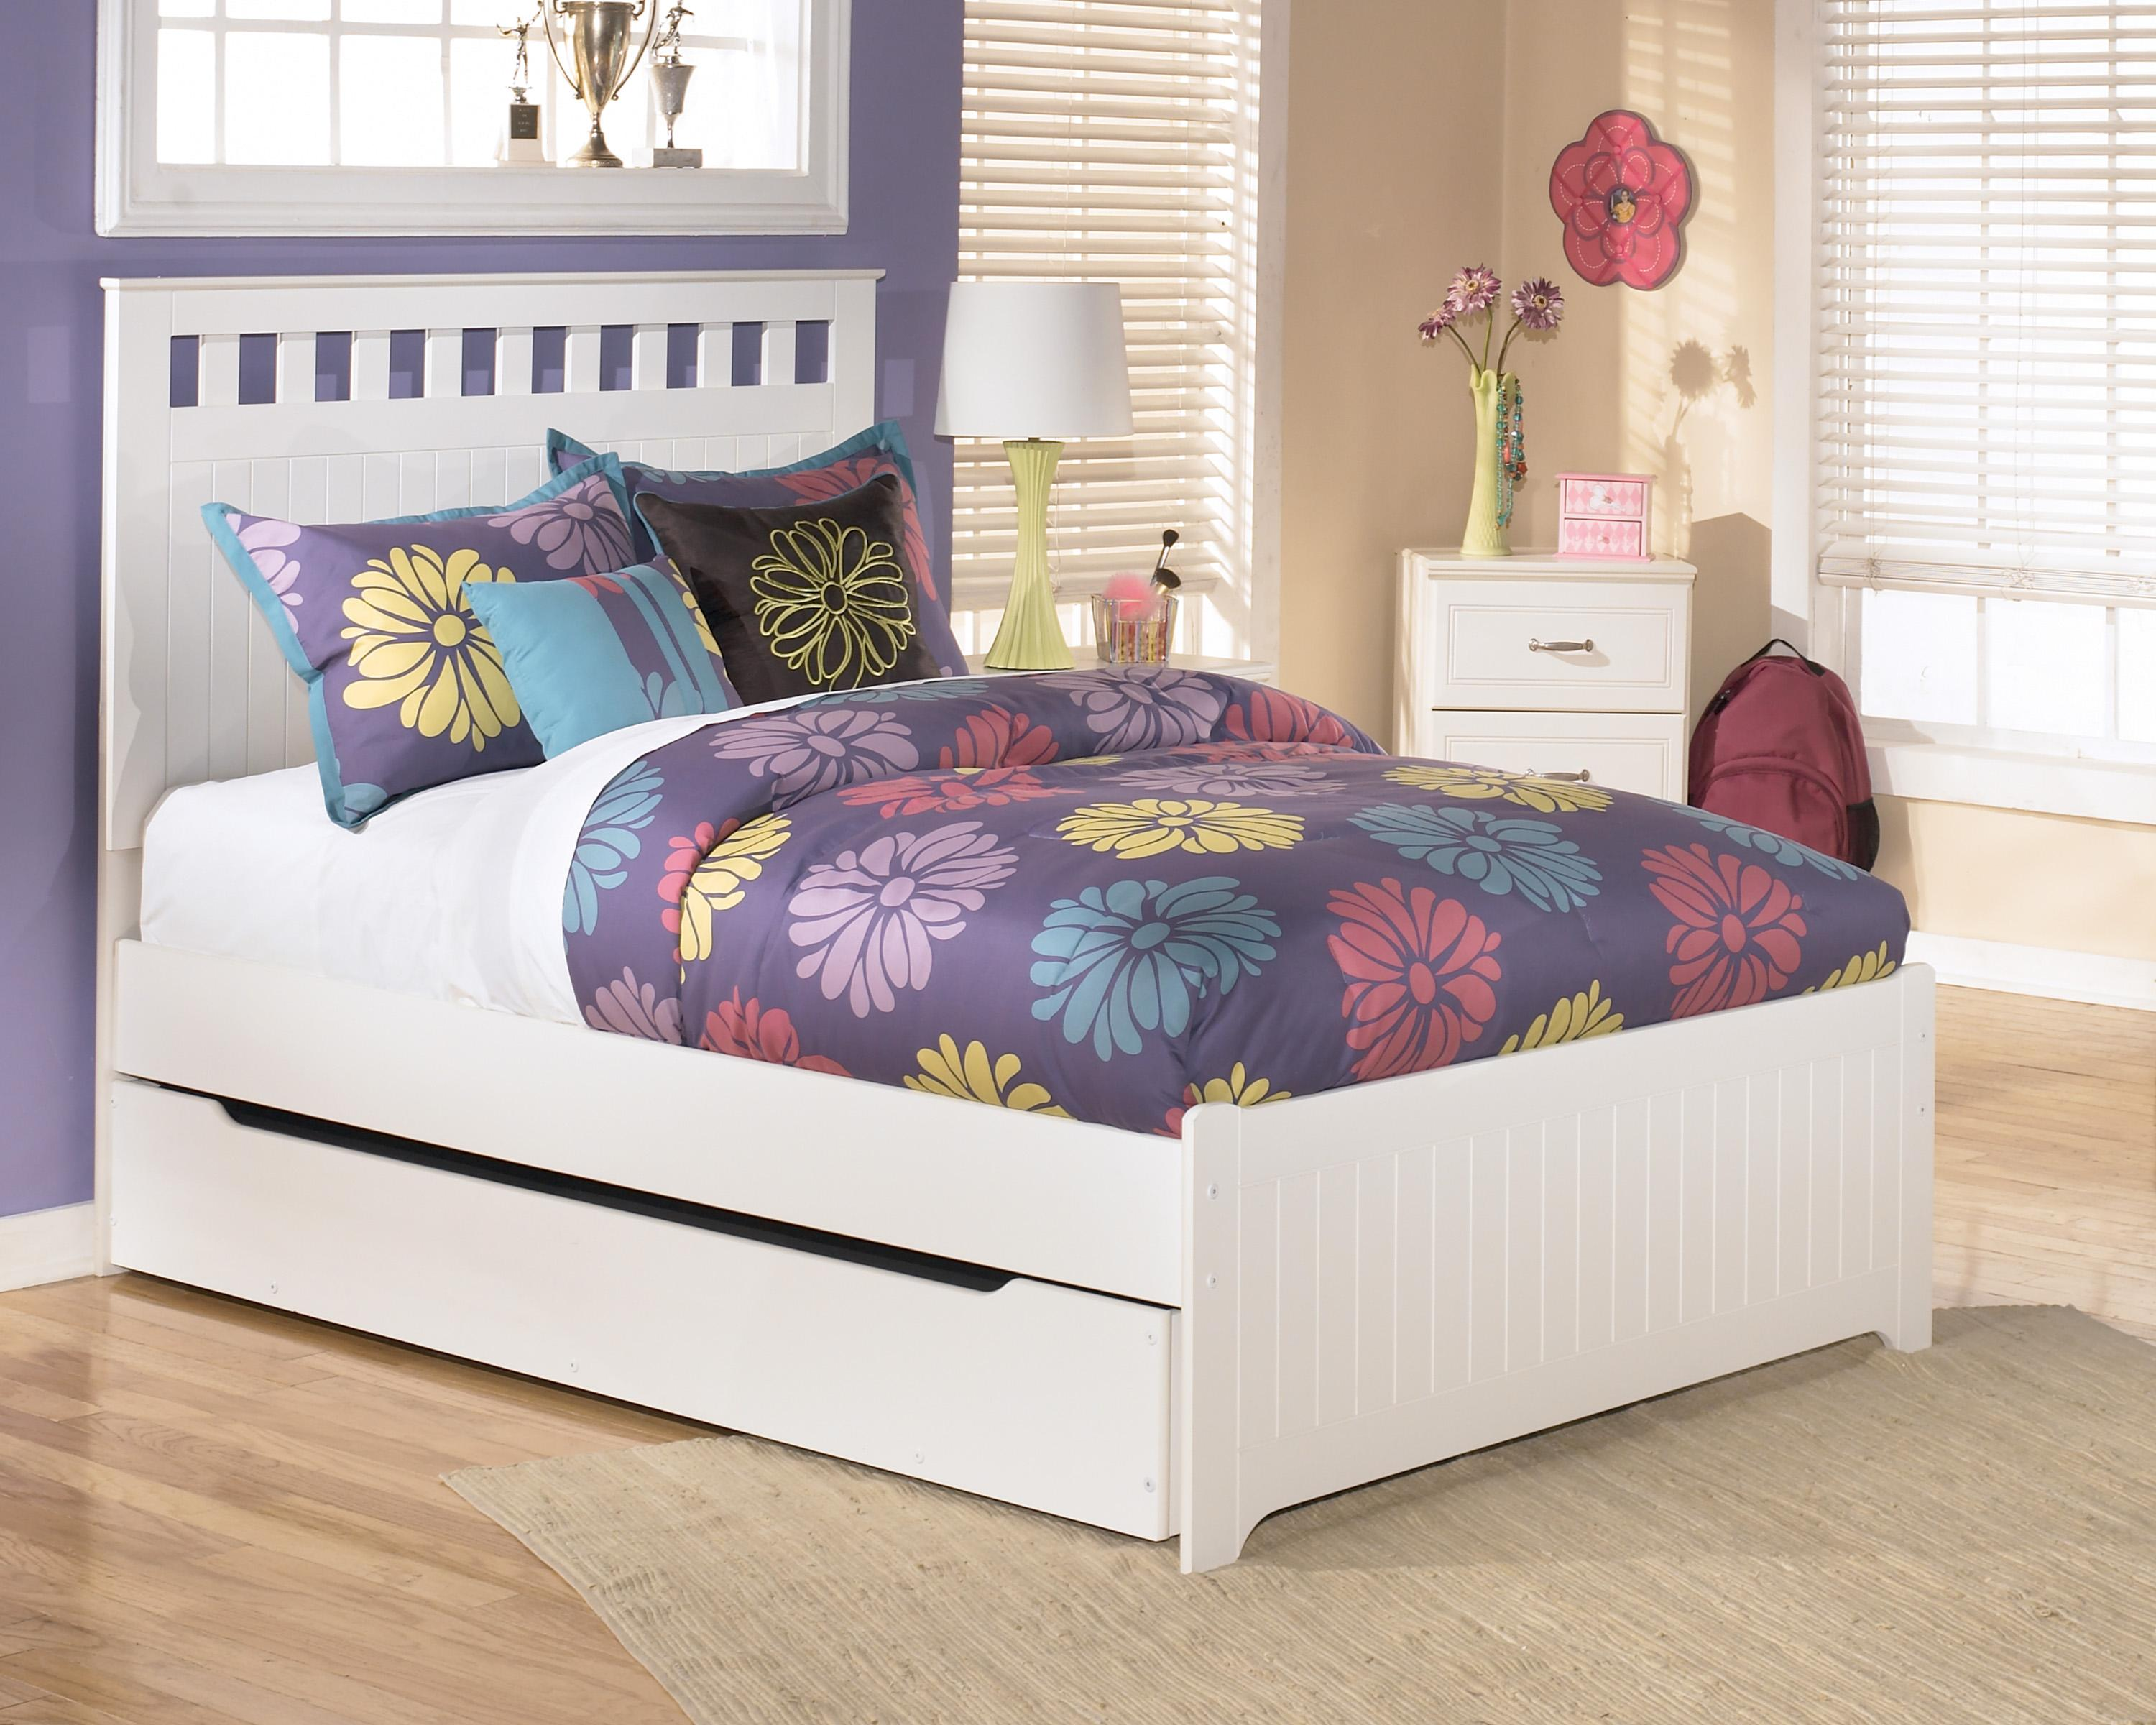 Signature Design by Ashley Lulu Full Bed with Storage/Trundle - Item Number: B102-87+84+60+86